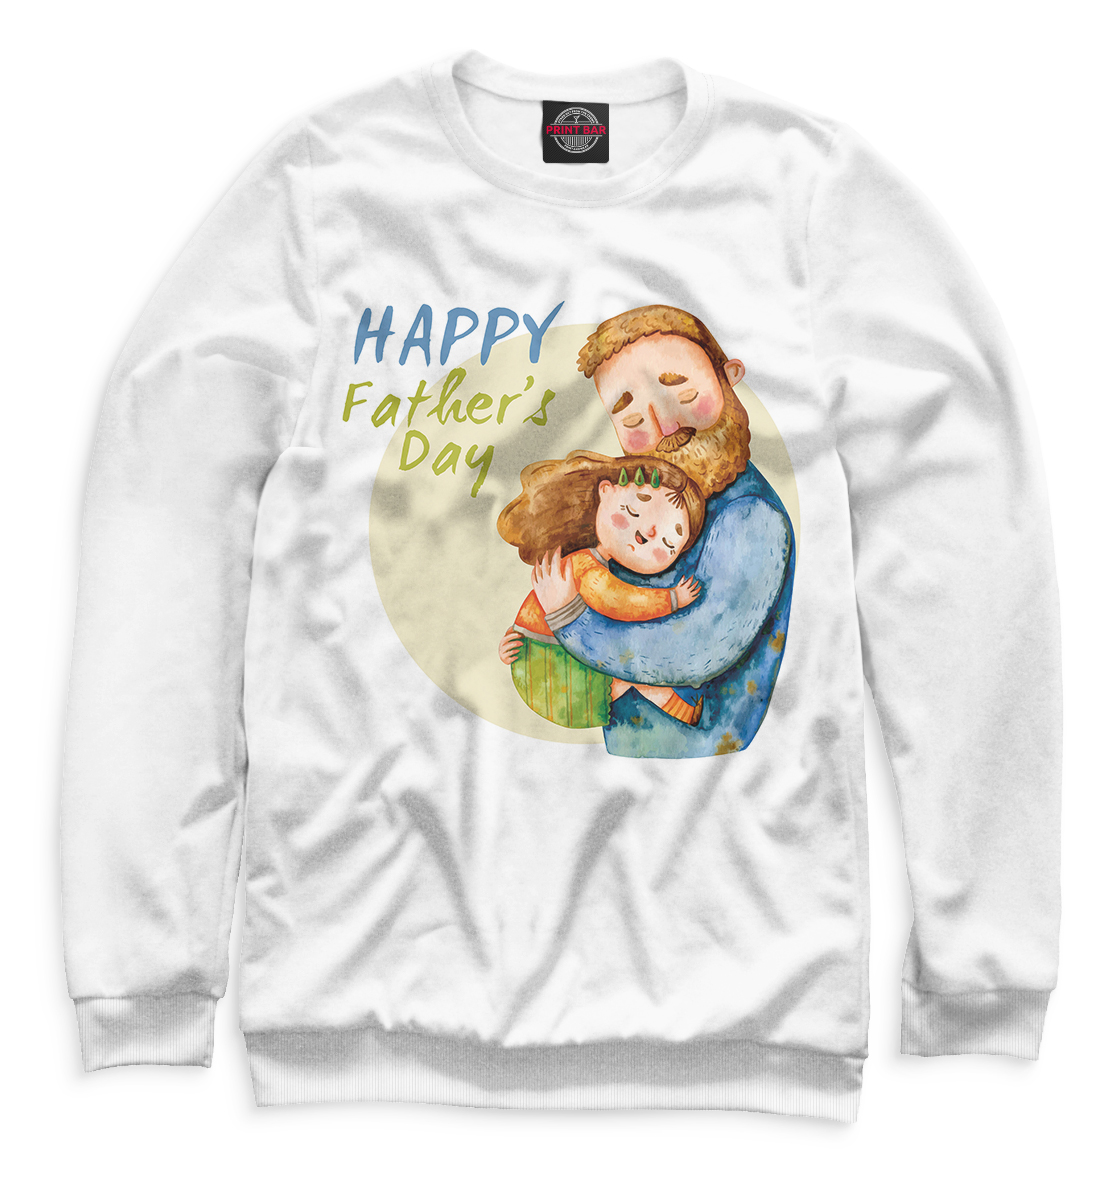 Фото - Day Father's day 2 day care шампунь